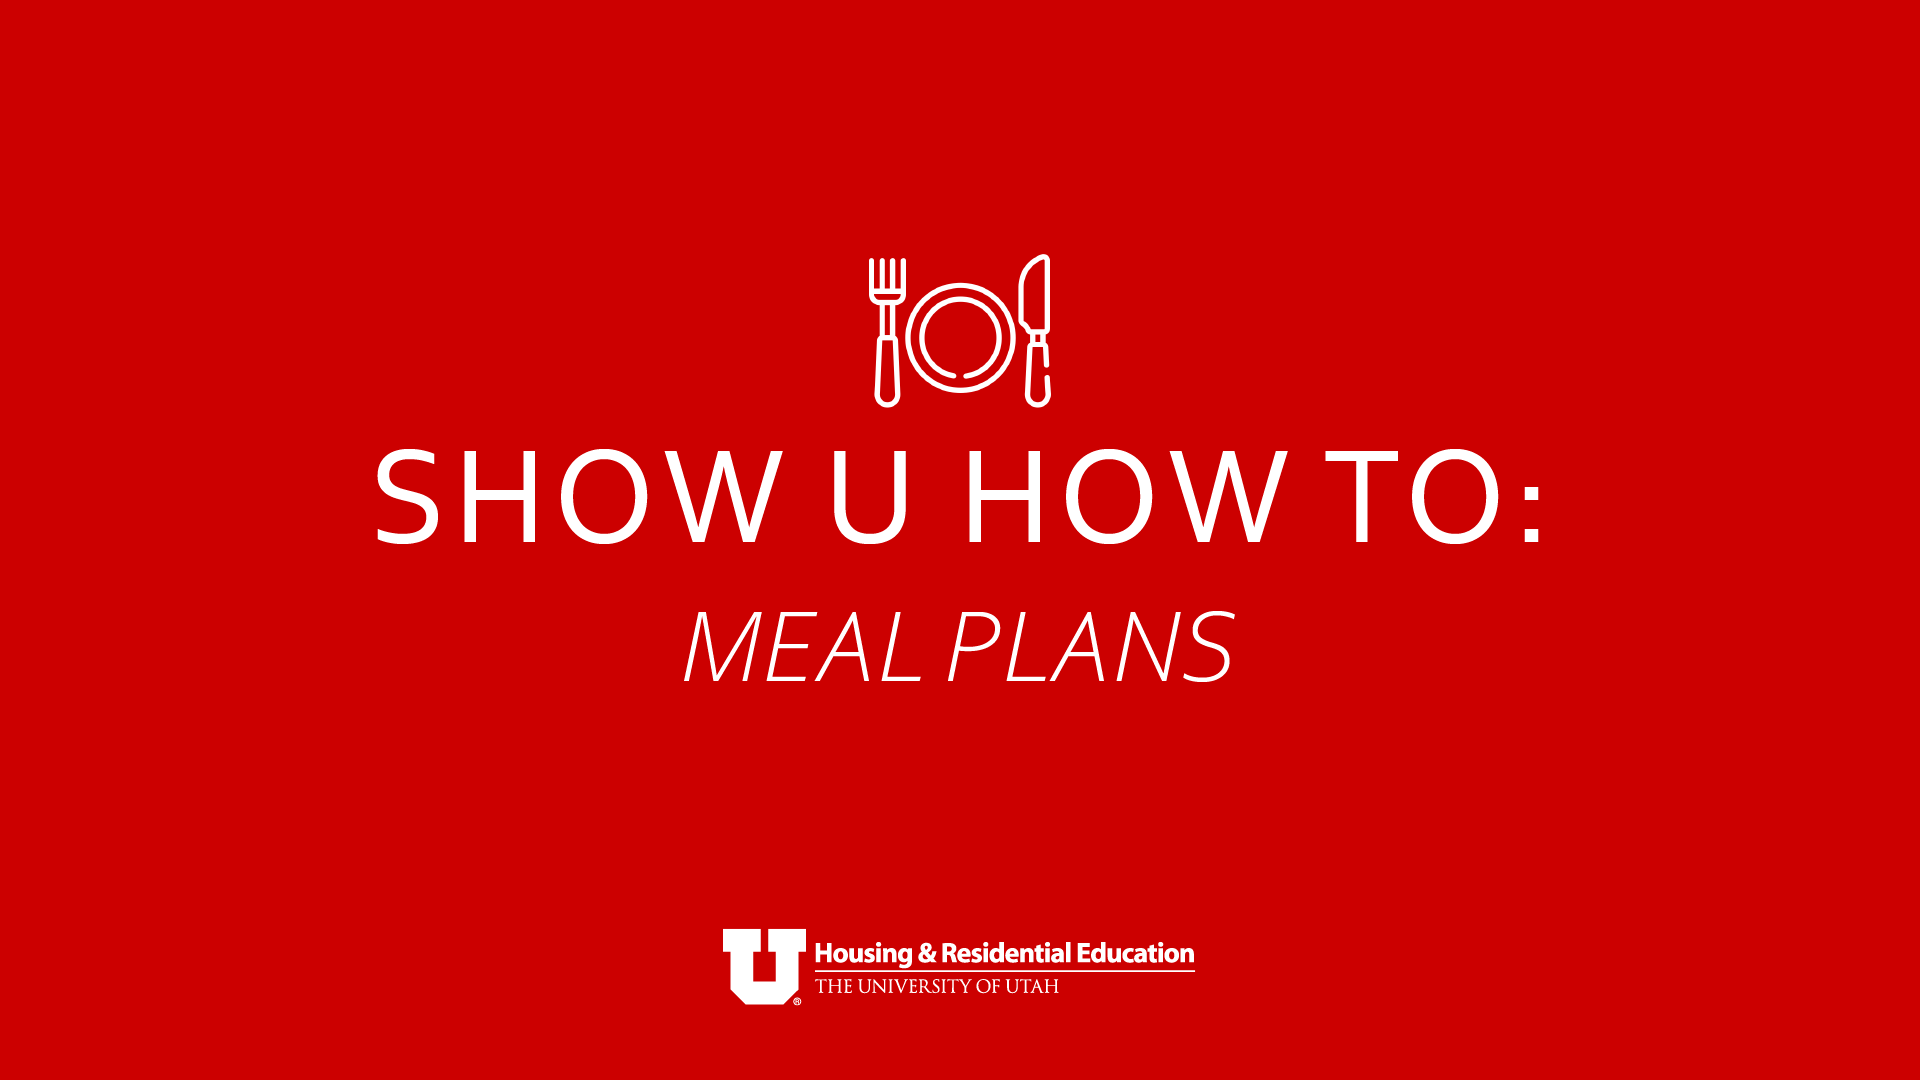 """a red background with white text reading """"Show U How To: Meal Plans"""" on the center of the image. Above that is a line drawing of a plate with a fork on the left and knife on the right. At the center bottom of the image is the HRE logo."""